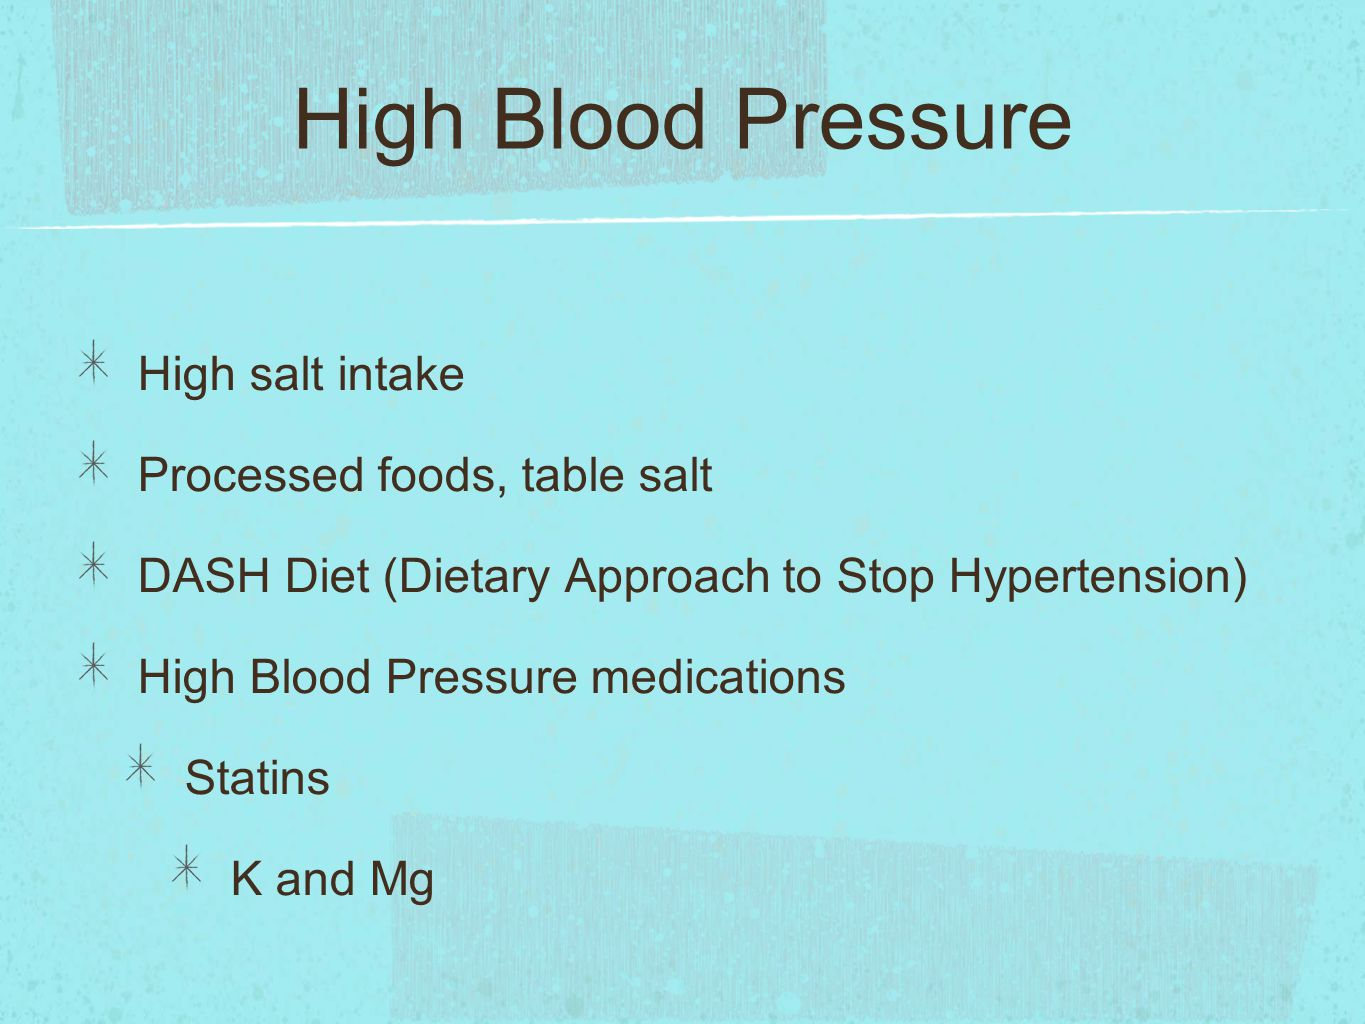 High Blood Pressure High salt intake Processed foods, table salt DASH Diet (Dietary Approach to Stop Hypertension) High Blood Pressure medications Statins K and Mg